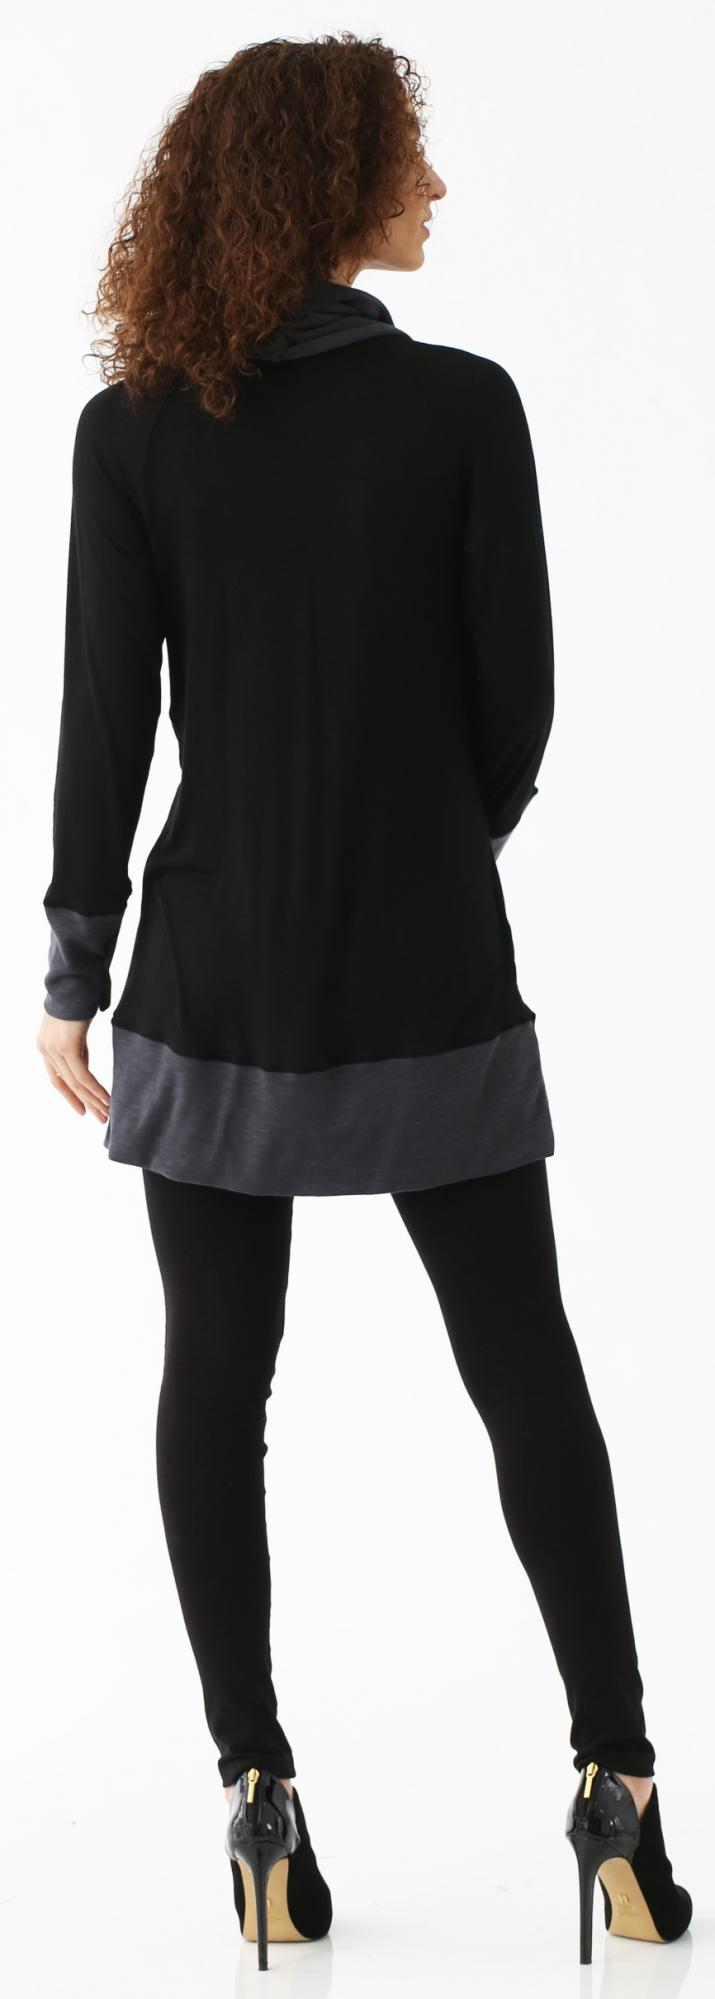 majamas-simone-nursing-tunic-black-back.jpg